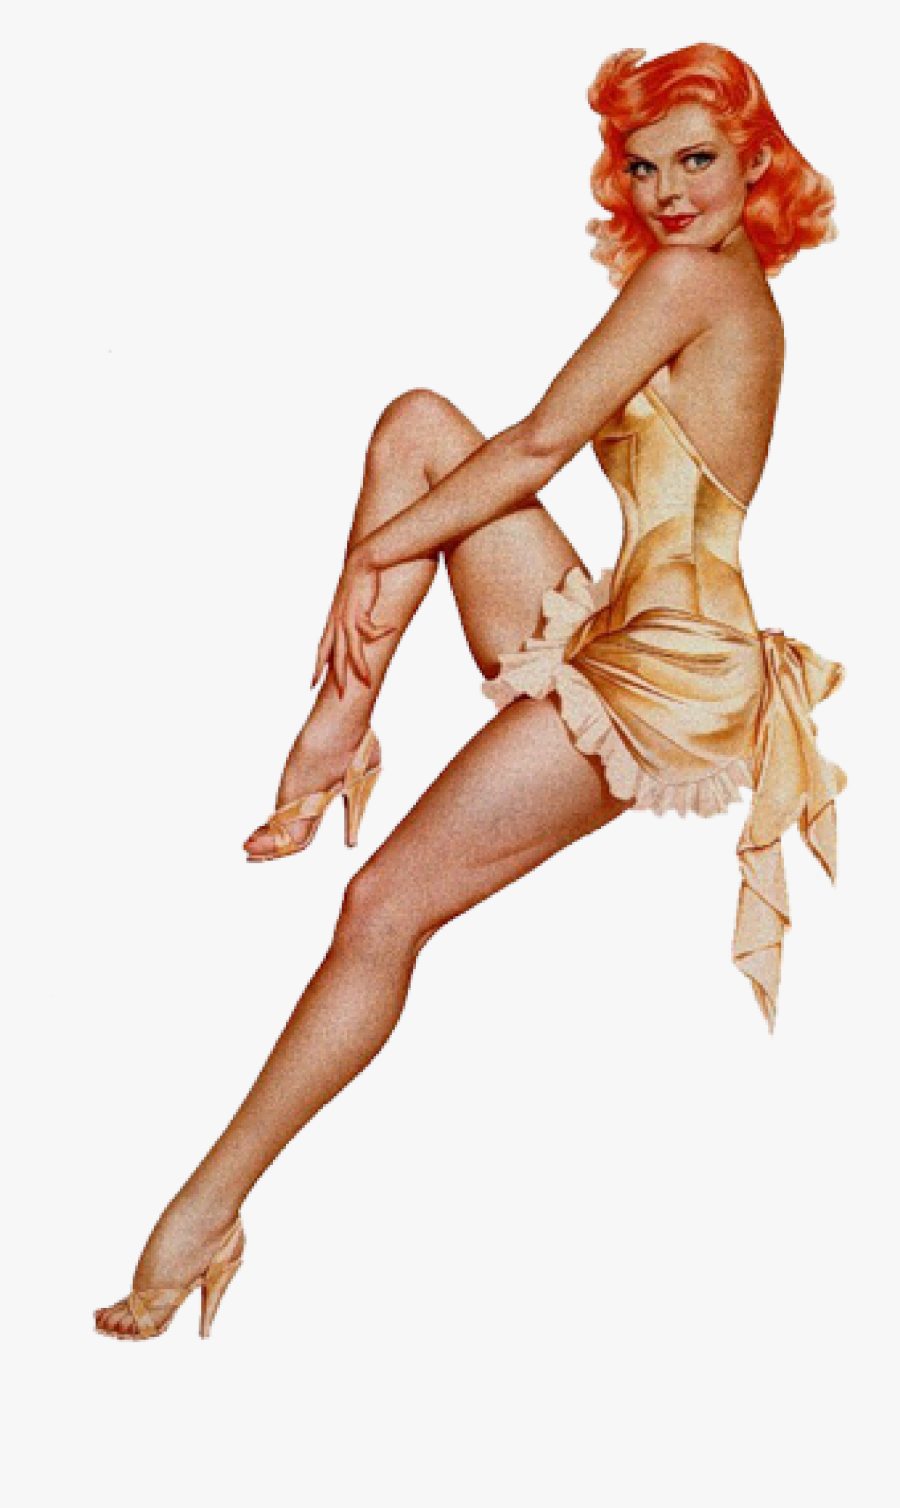 Pin Up, Png Format With Transparent Background - Pin Up Girls, Transparent Clipart